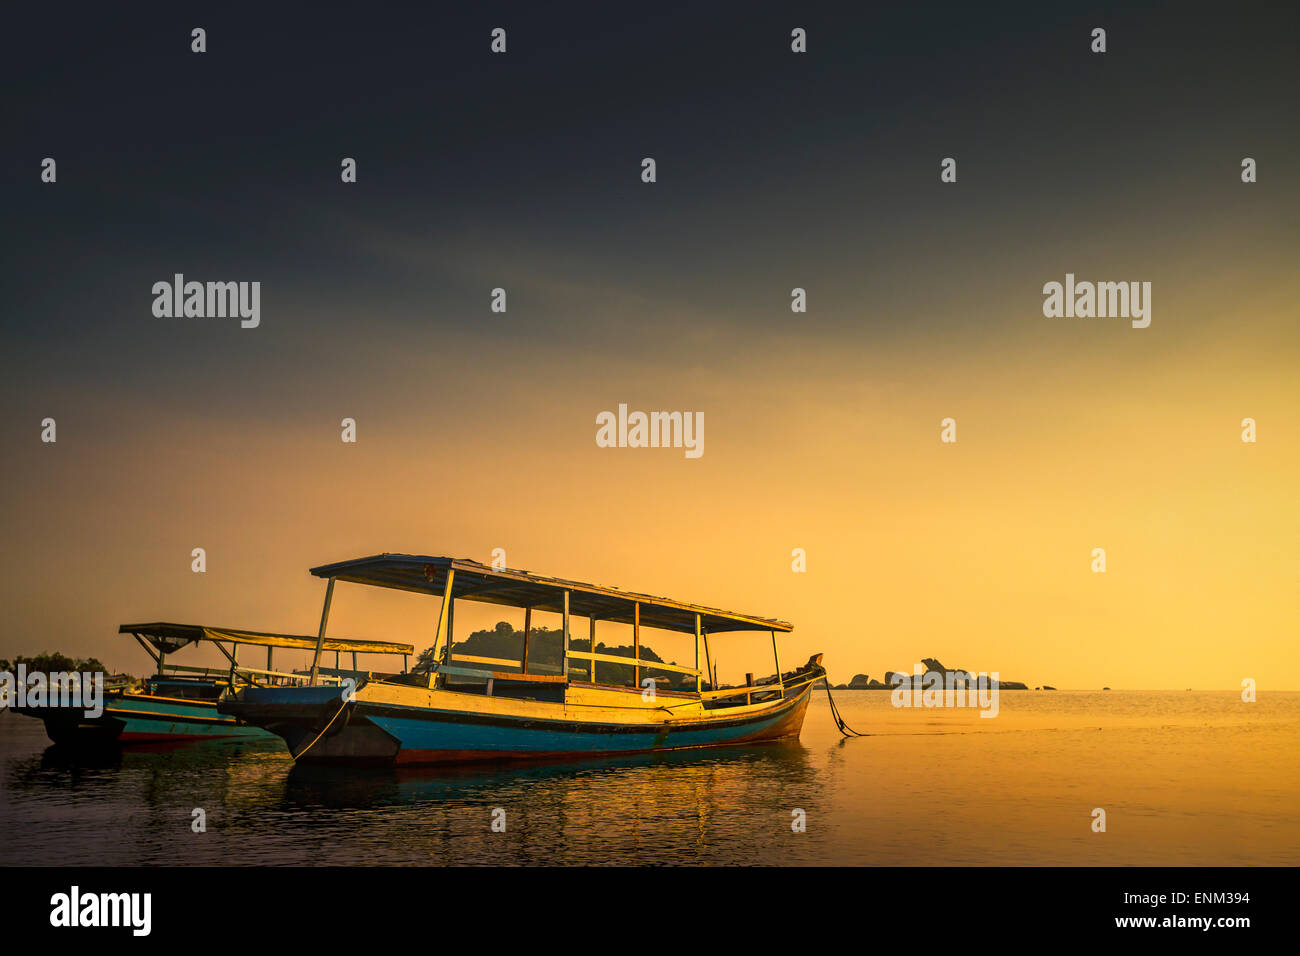 Tourist Boats for Island Hopping - Stock Image